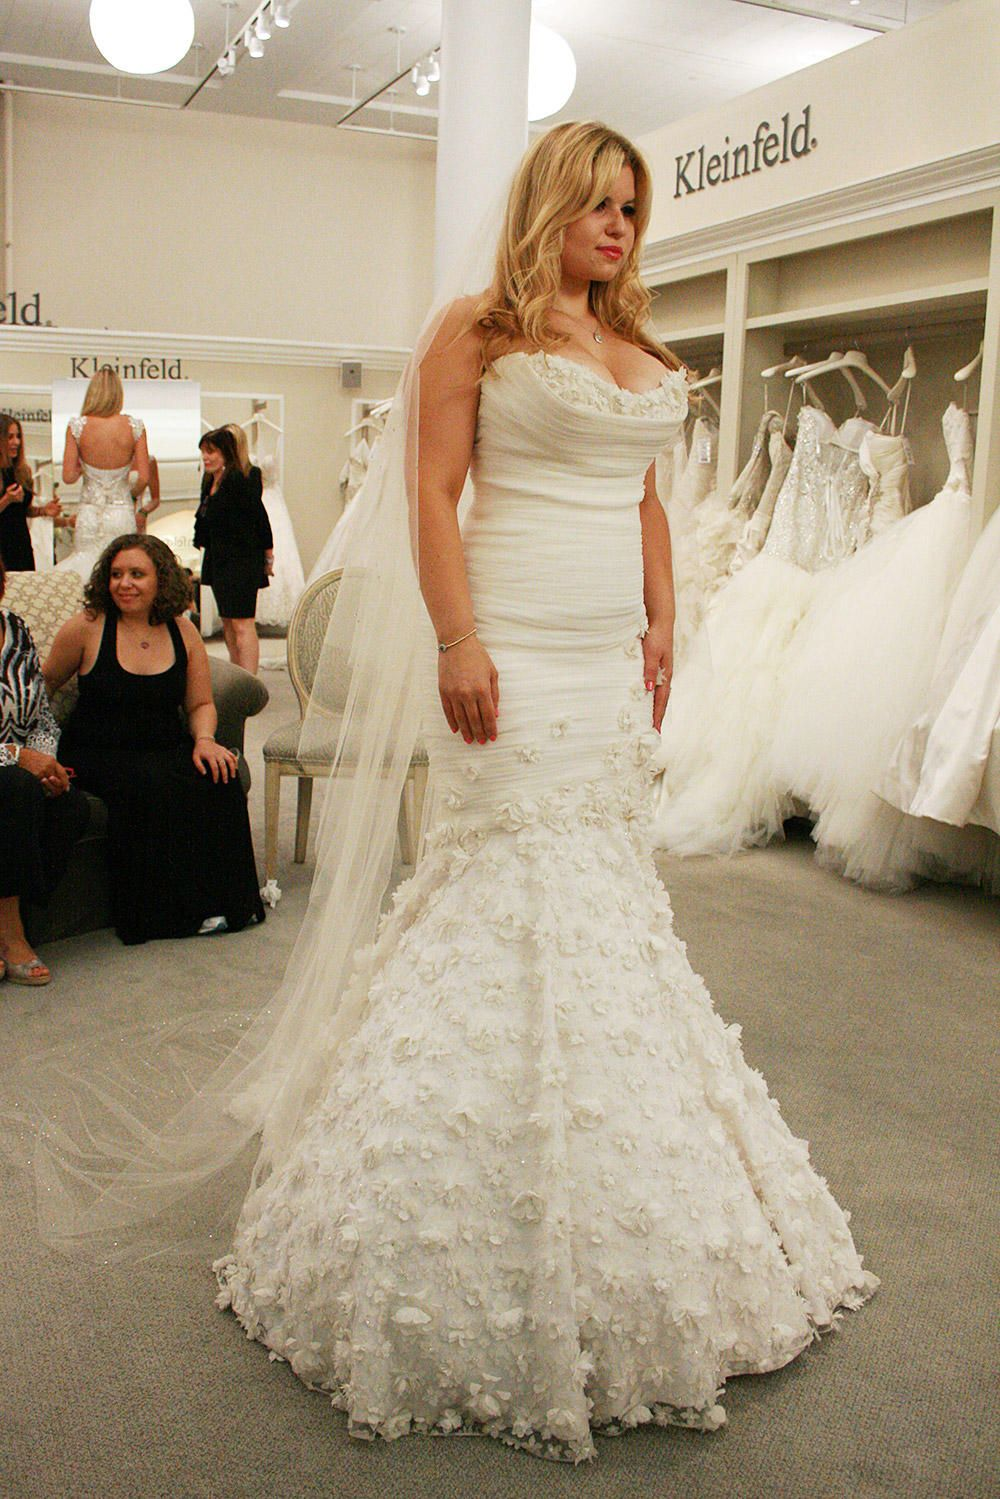 Christie from Say Yes to the Dress Mark zunino wedding